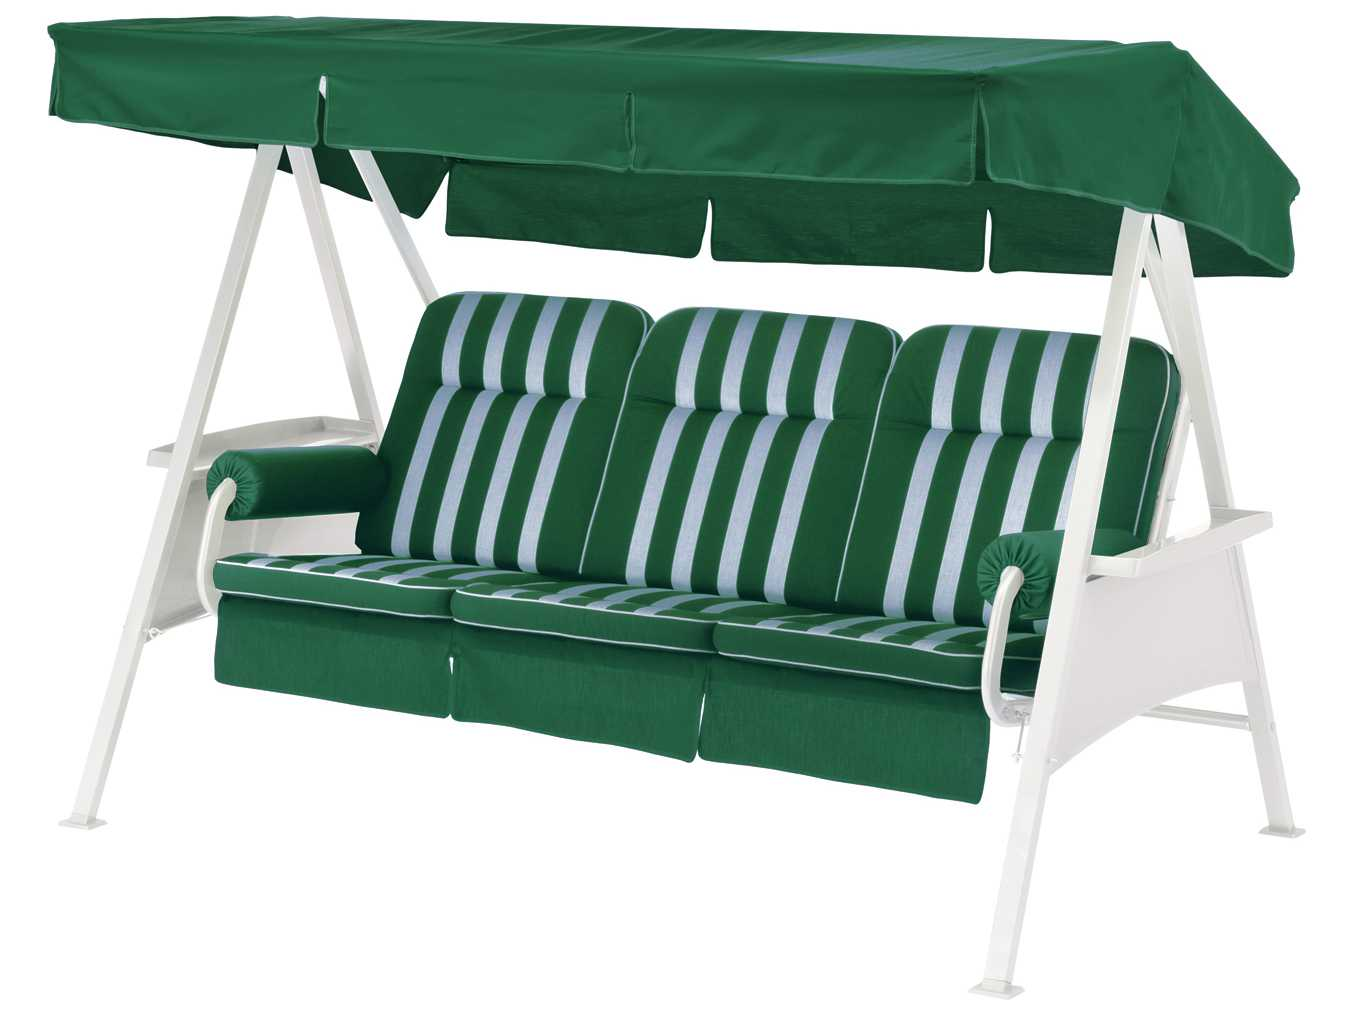 Kettler 3 Seater Swing With Forest Green Cushion Set 41590k1